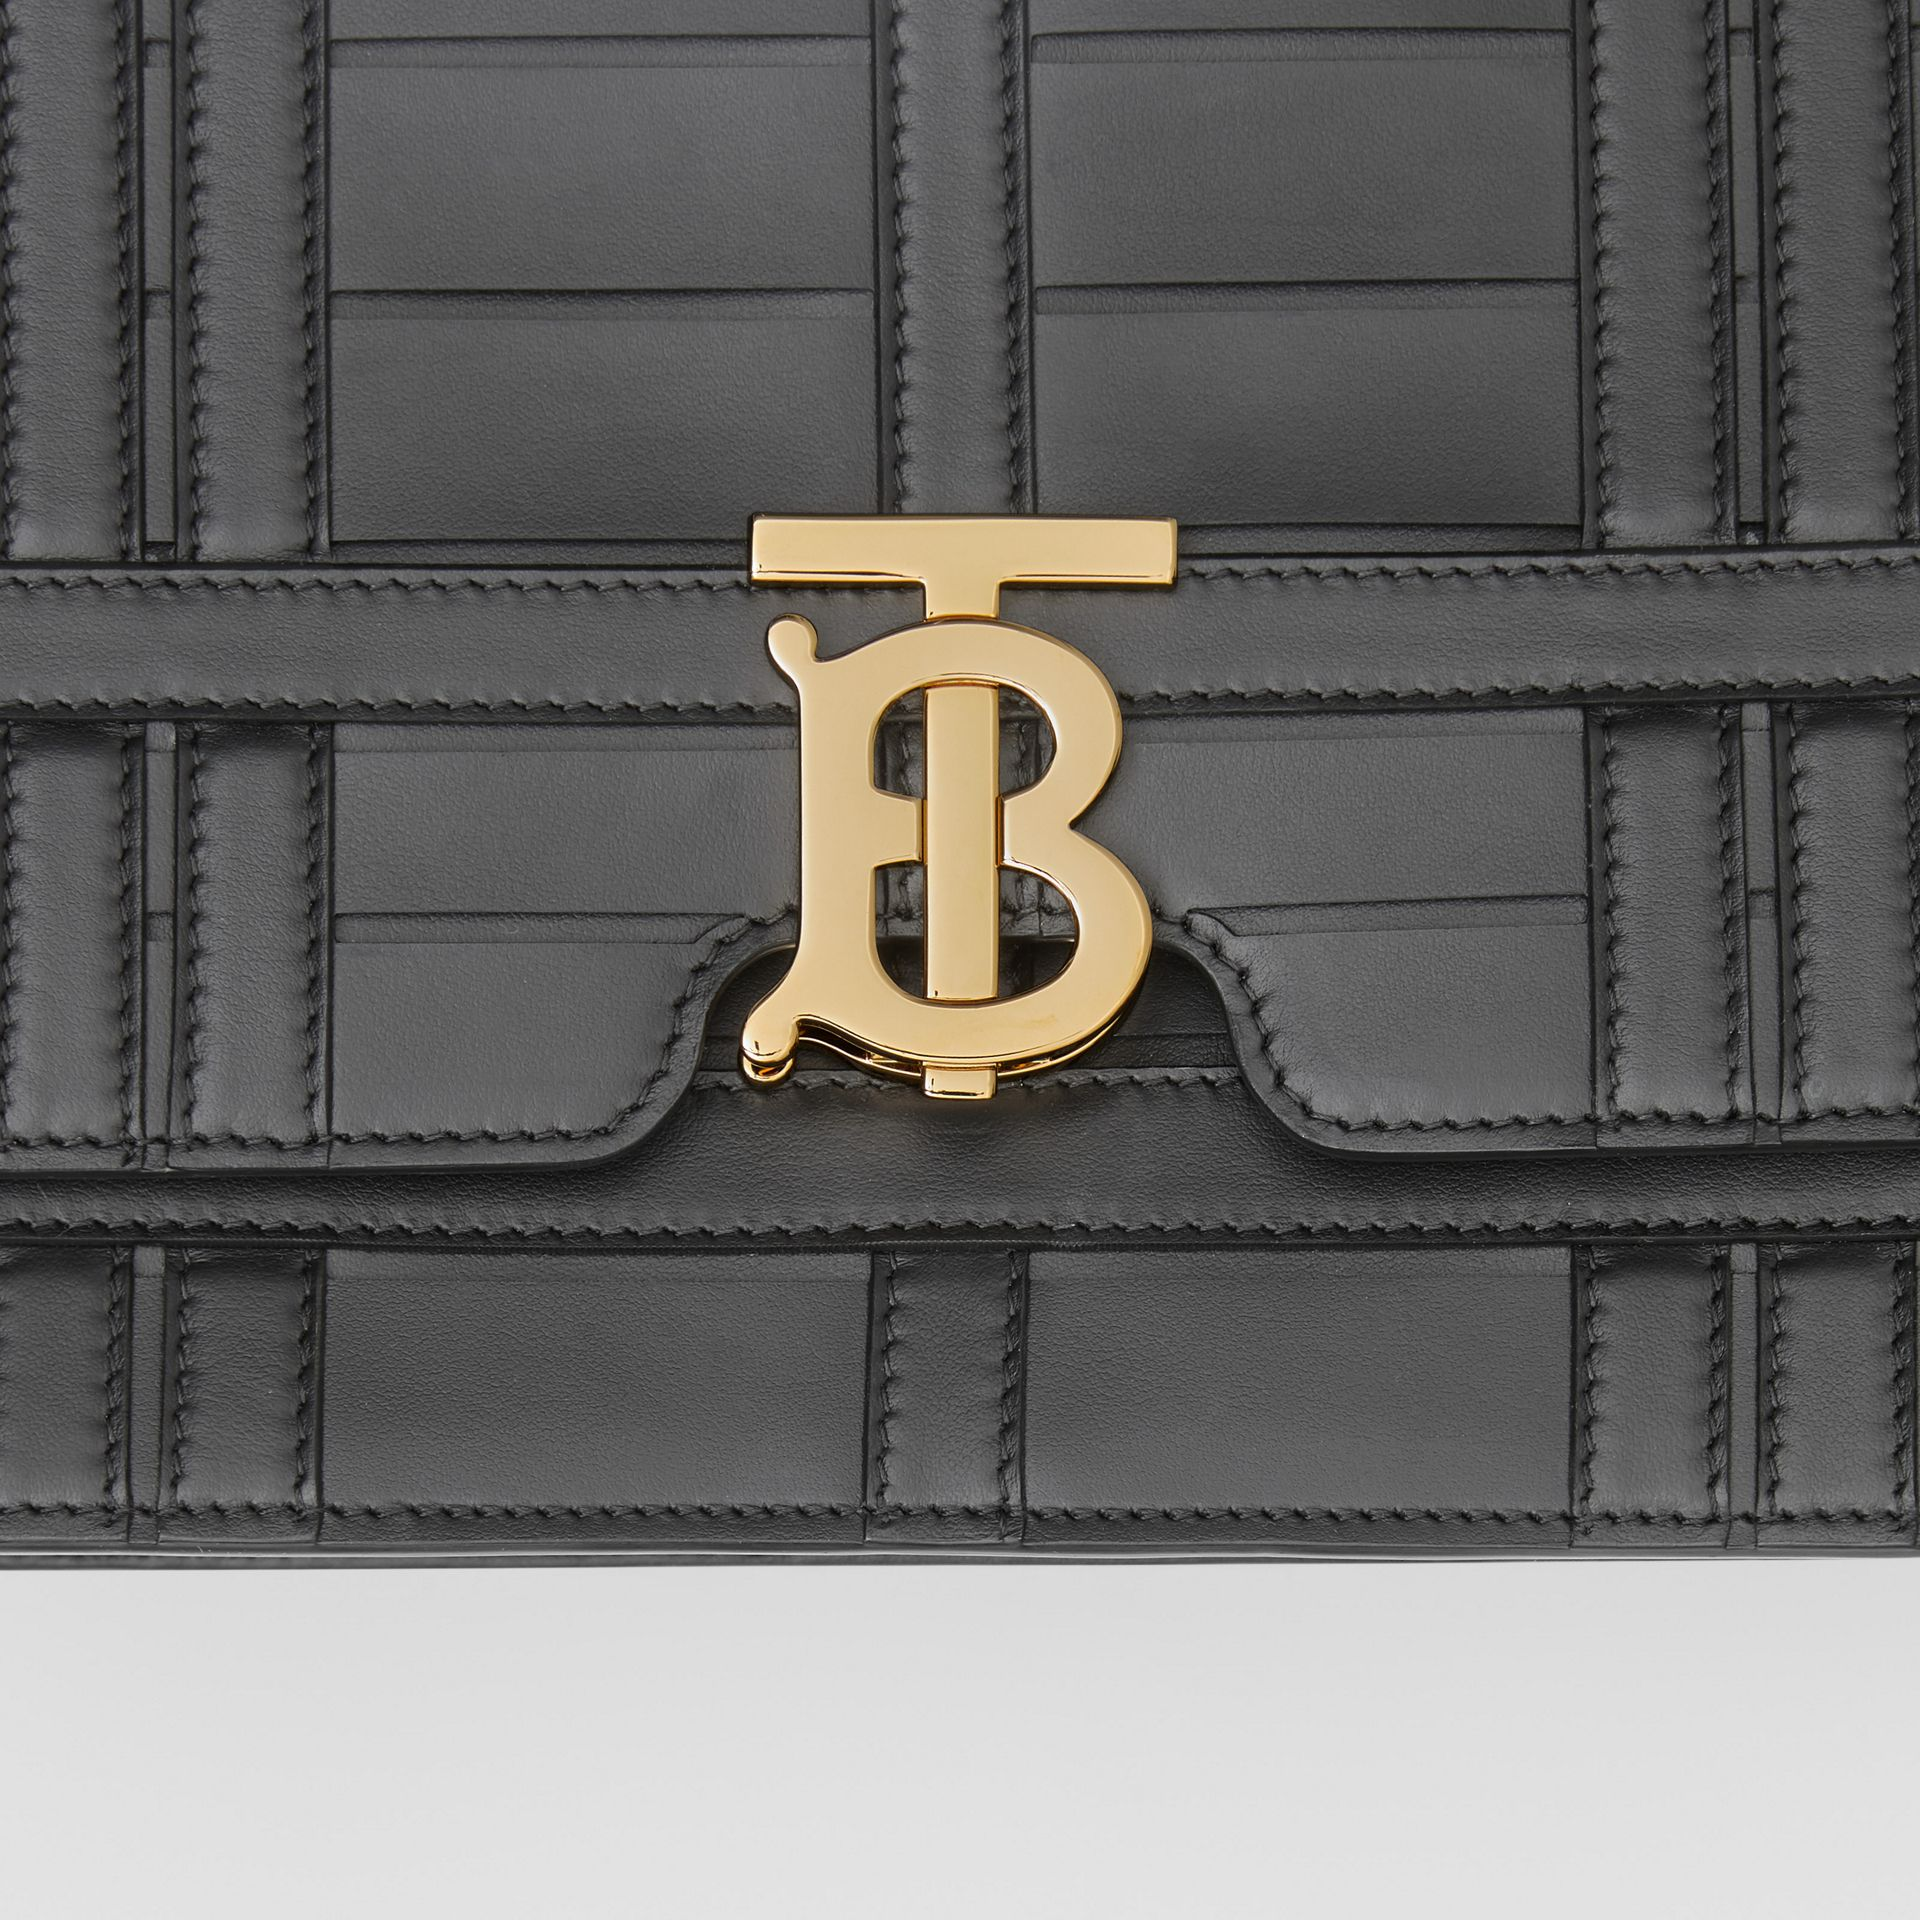 Medium Woven Leather TB Bag in Black - Women | Burberry - gallery image 1